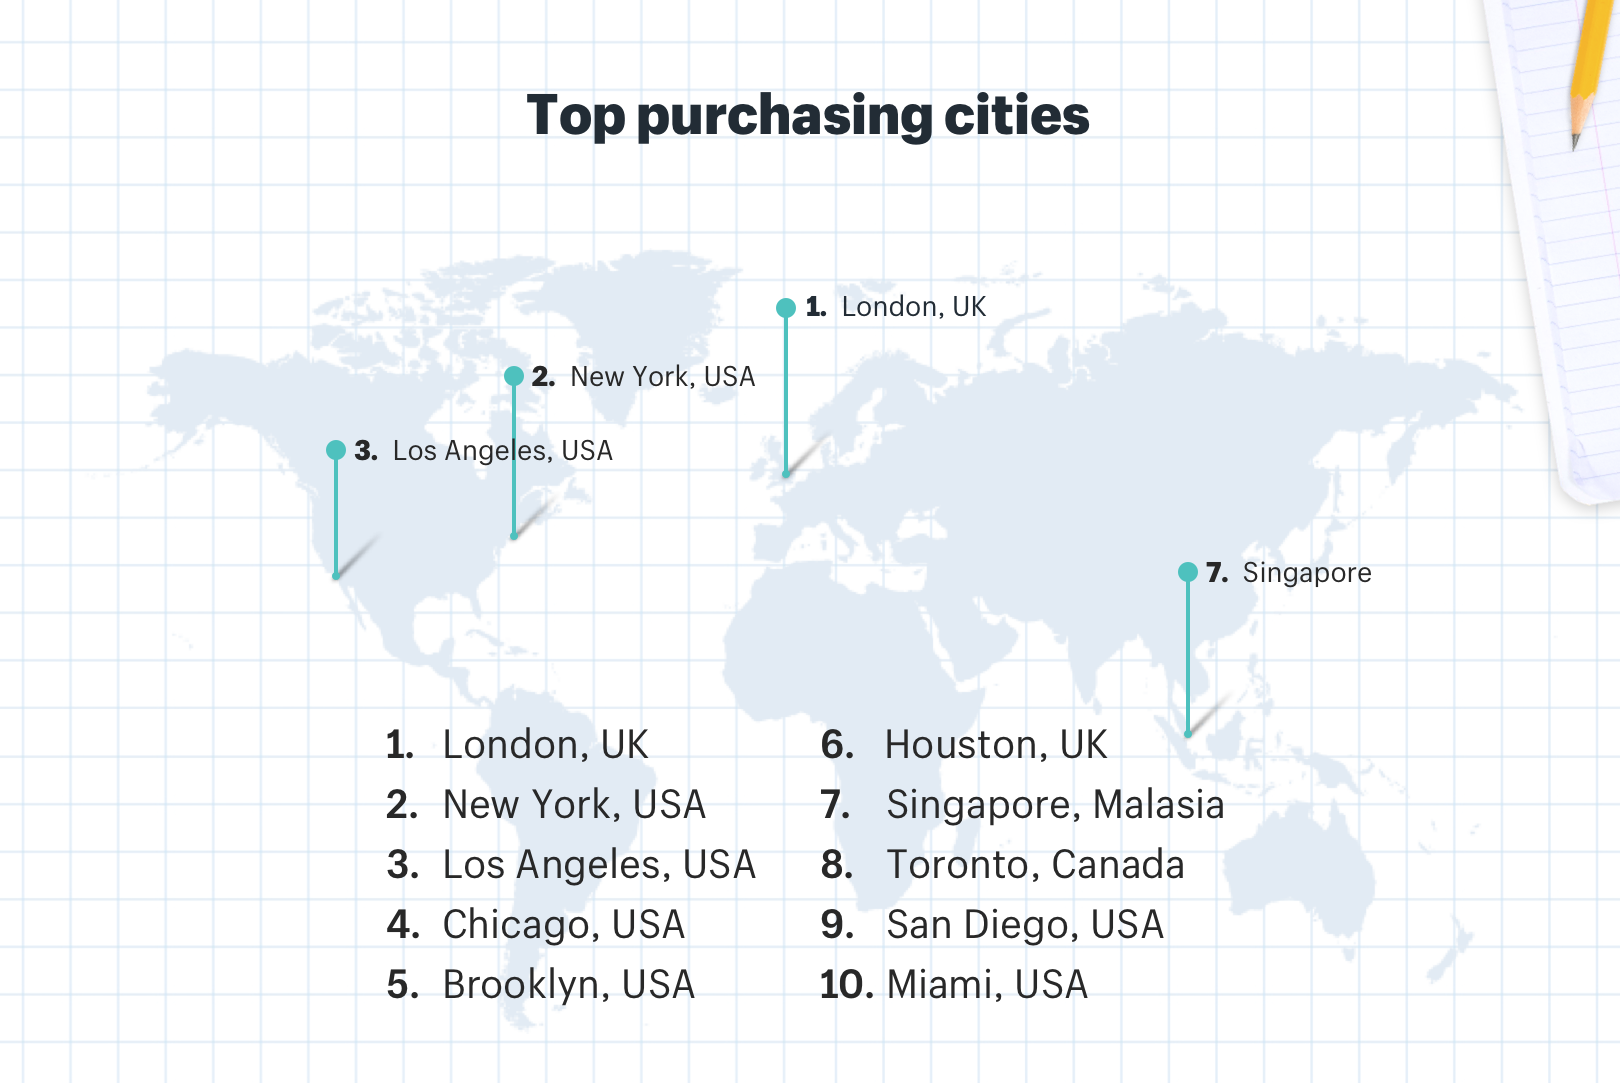 Back to school ecommerce international top purchasing cities